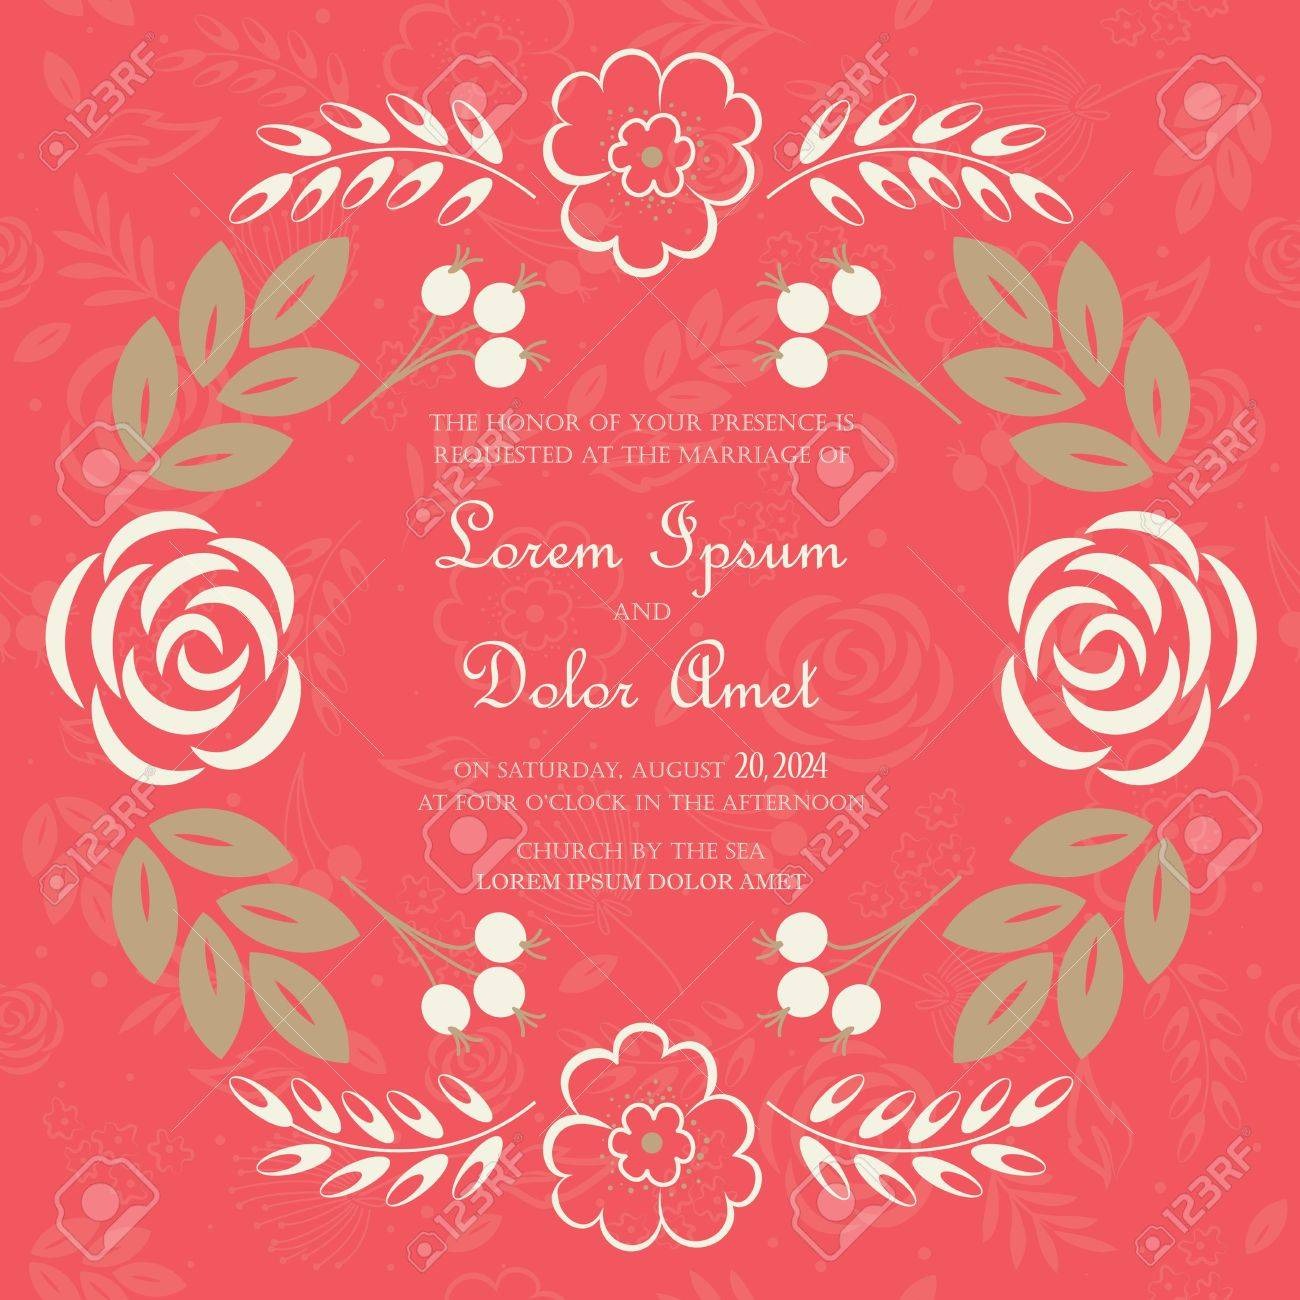 Wedding Invitation Or Announcement Card With Beautiful Floral ...